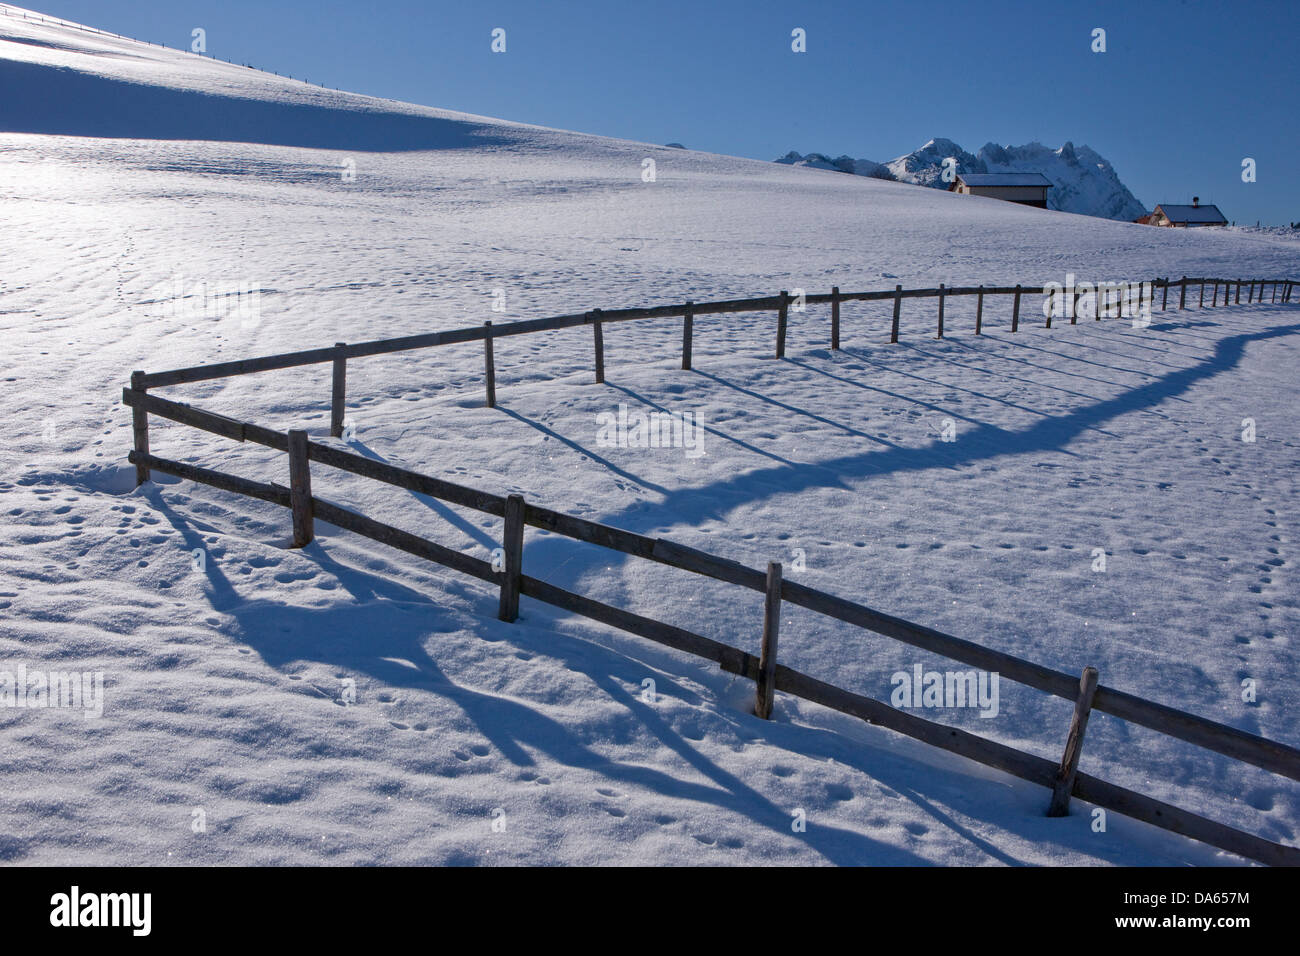 Hedge, snow, mountain, mountains, agriculture, canton, Appenzell, Innerroden, Appenzell area, Alpstein, Säntis, - Stock Image